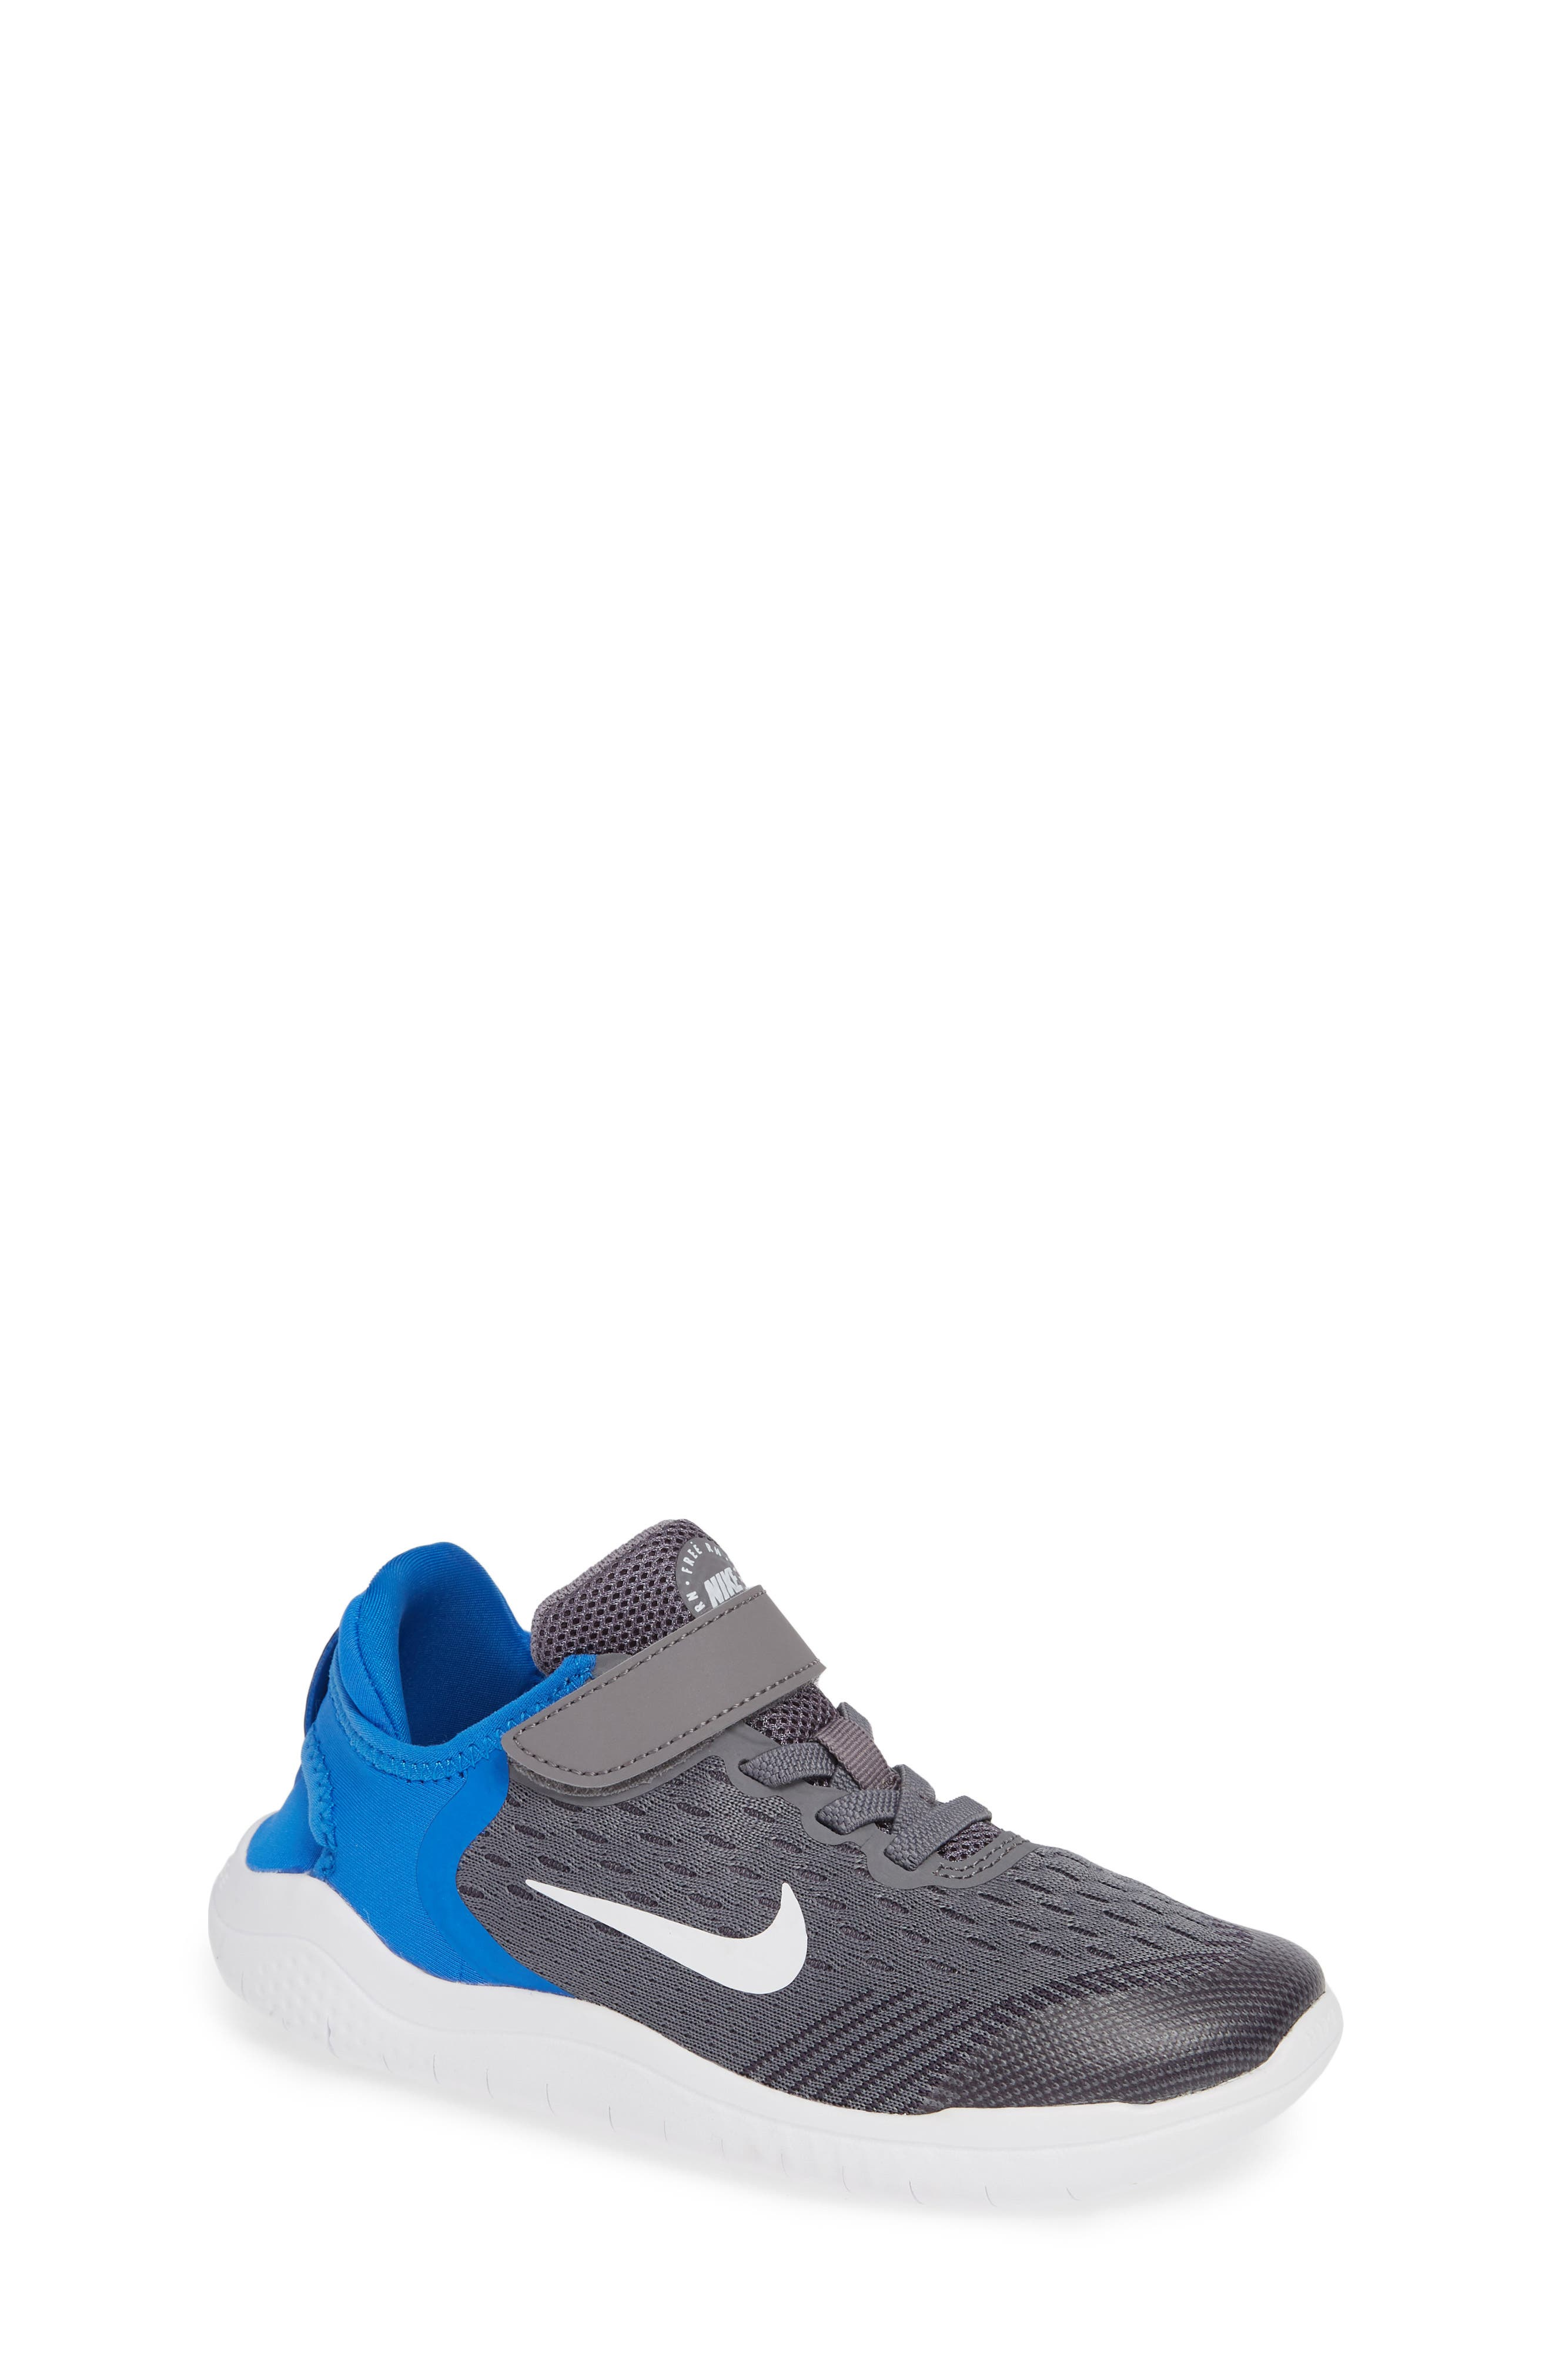 Free RN Running Shoe,                             Main thumbnail 1, color,                             GREY/WHITE/BLUE